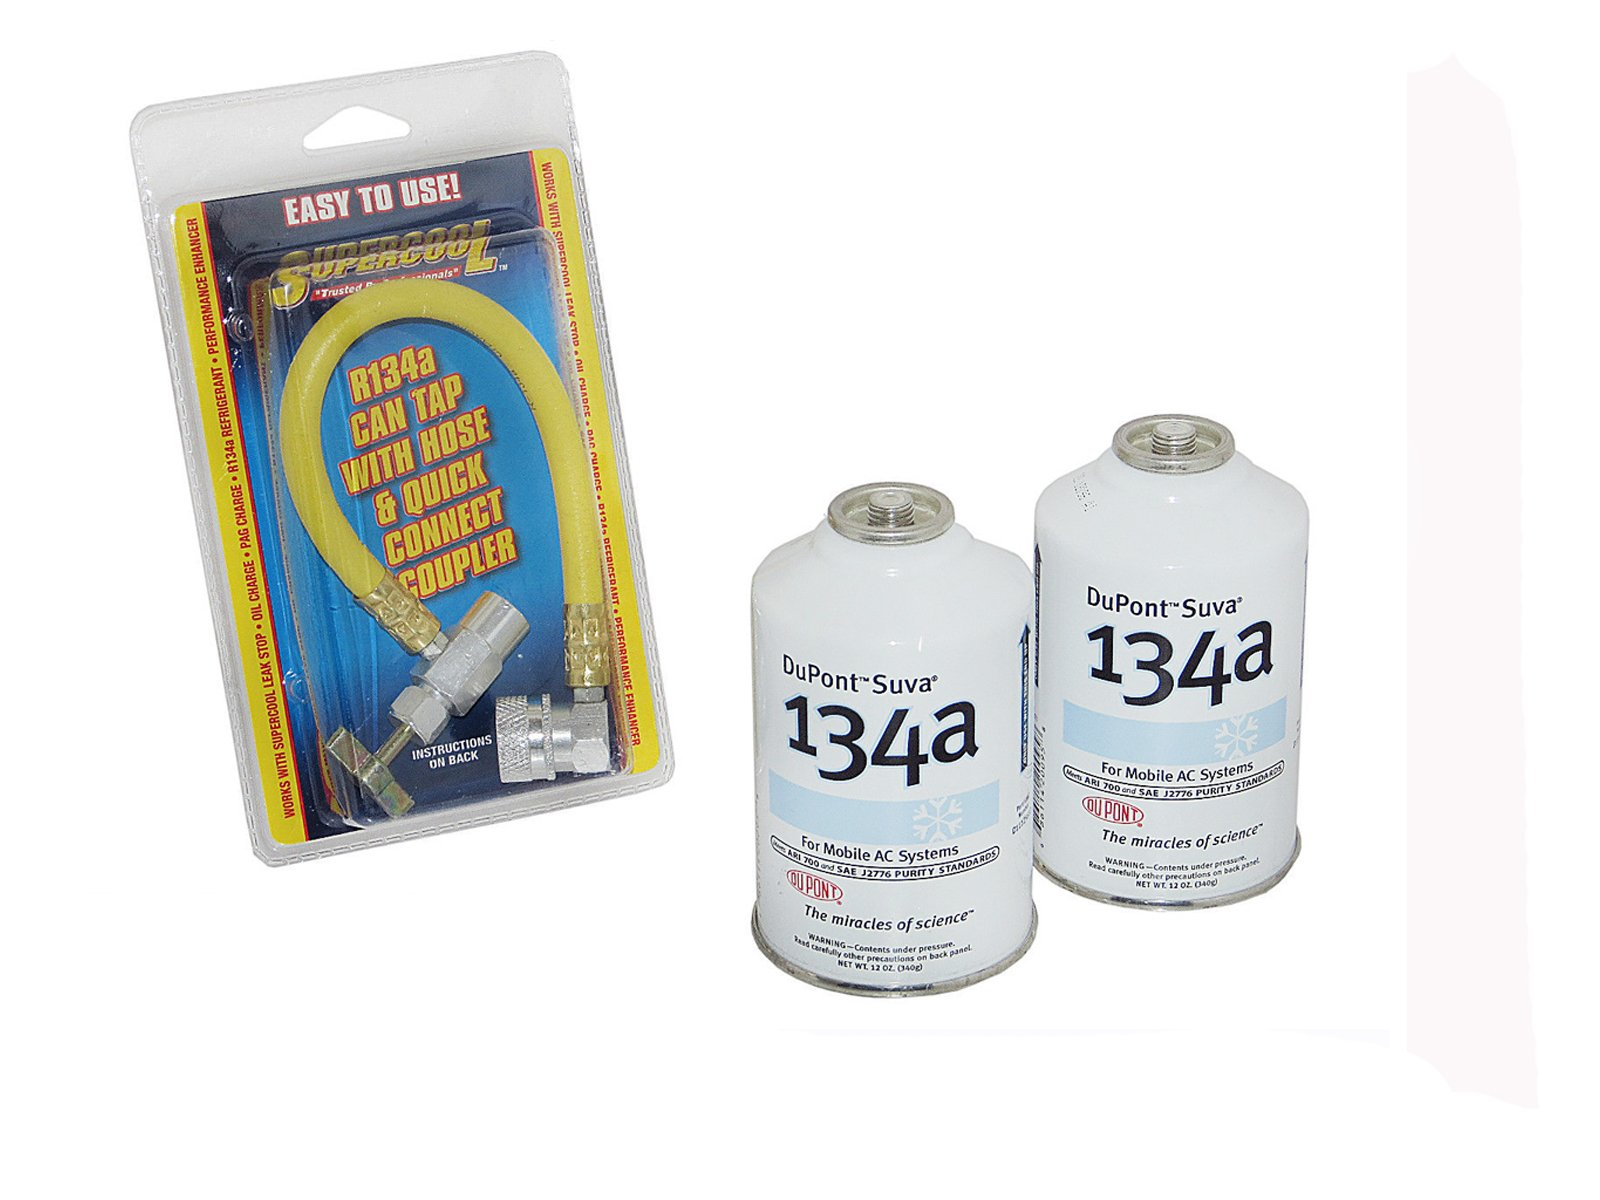 2 DuPont Suva R-134a Can Refrigerant & R-134a Recharging Hose Kit